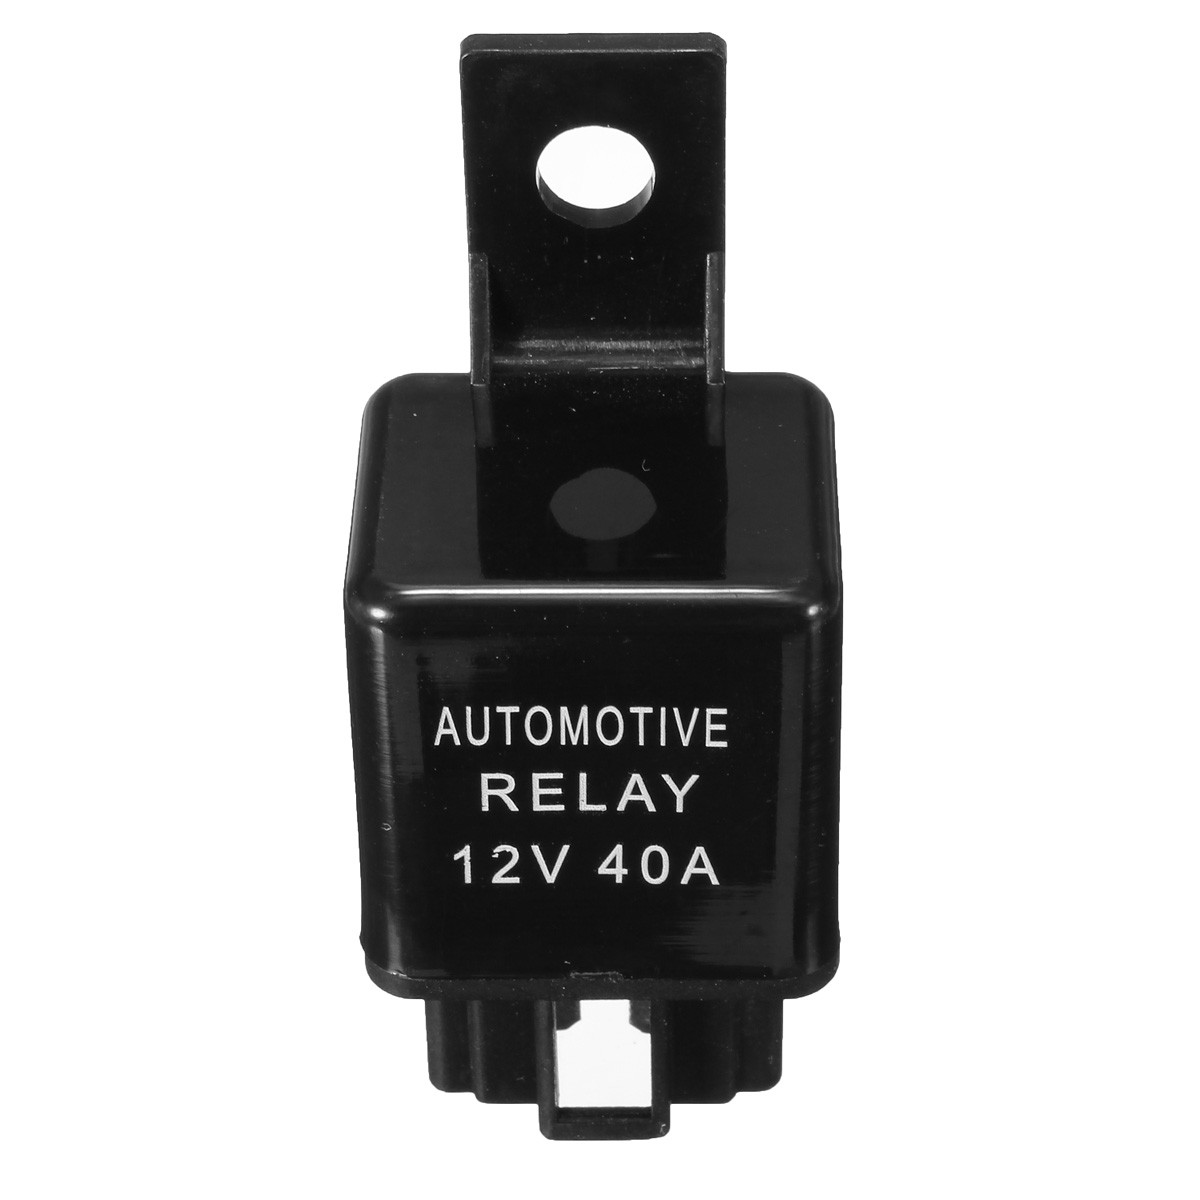 3c8e2818-0fc7-47a9-8976-3d3f061c7117 Wire A Light Switch In Australia on wire in cigarette lighter, wire in toggle switch, screw in light switch, plug in light switch, wire in ceiling light,